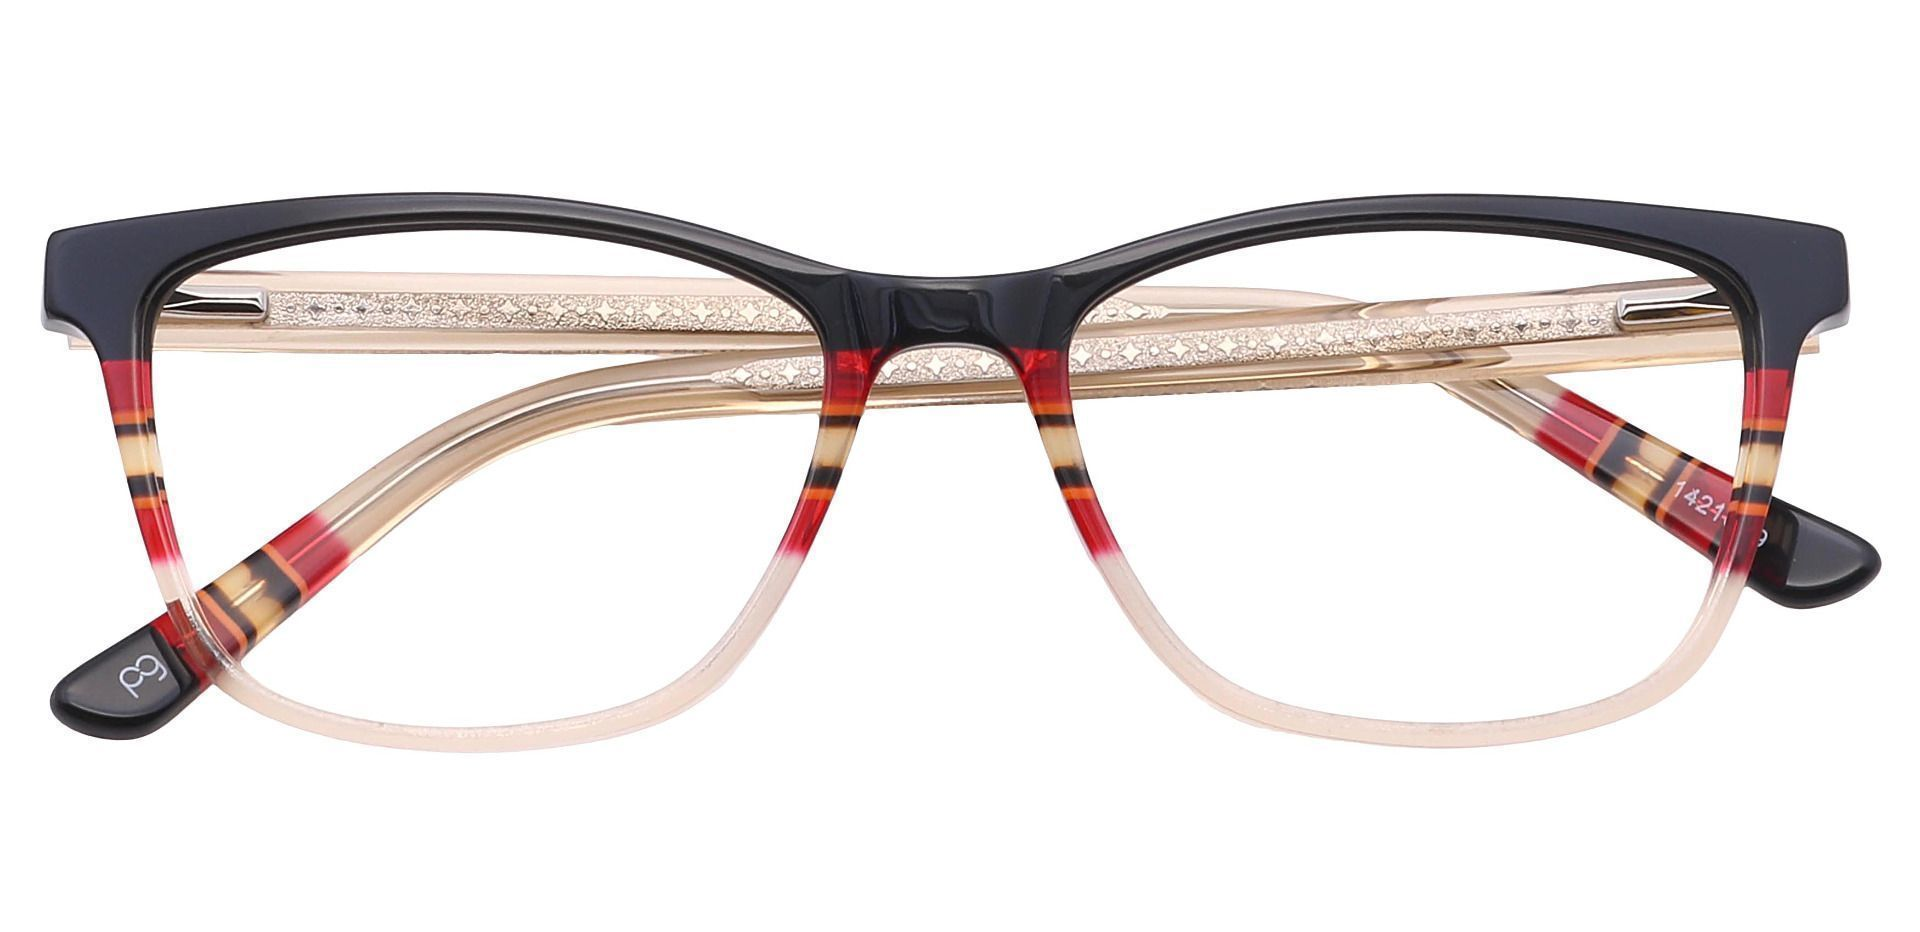 Taffie Oval Lined Bifocal Glasses - Clear